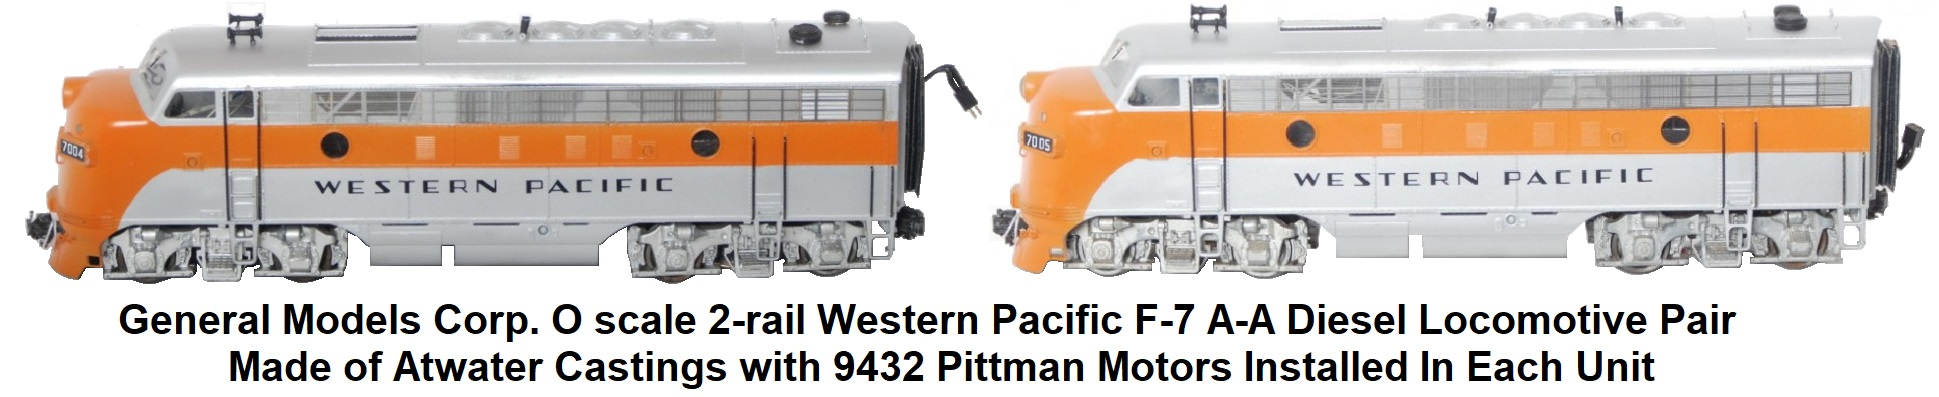 General Models Corp. O scale 2-rail Western Pacific F-7 A-A diesel locomotive pair made of Atwater castings and 9432 Pittman motors installed in each unit